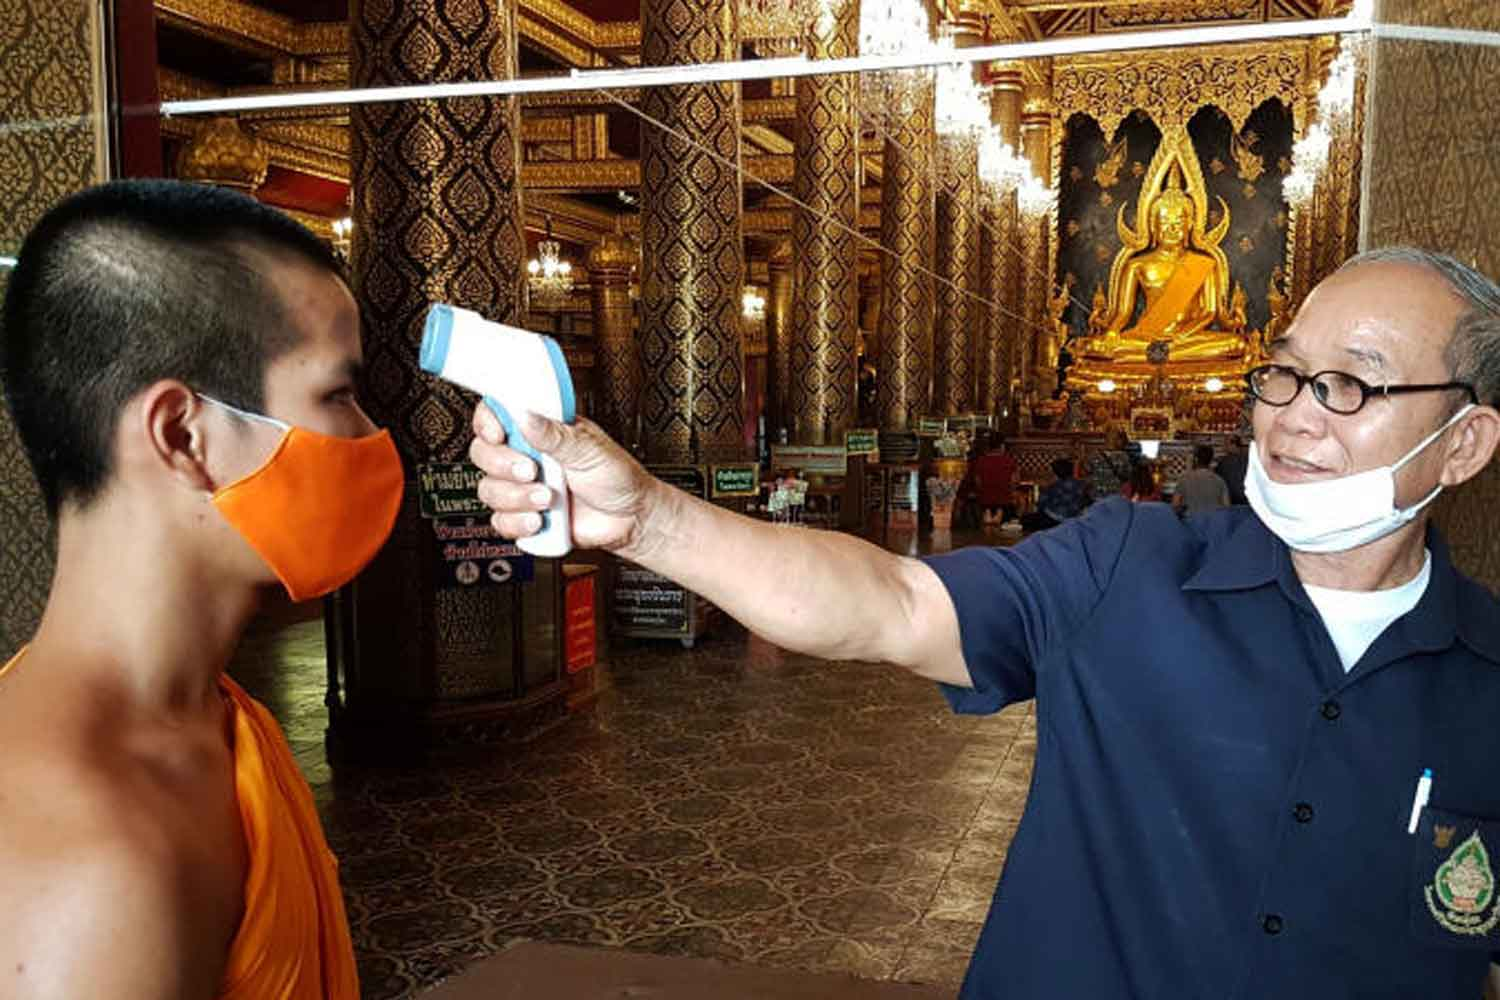 An official measures the body temperature of a monk at Wat Phra Si Rattana Mahathat in Muang district of Phitsanulok province on Tuesday. The Public Health Ministry on Wednesday reported 107 more local cases of Covid-19. (Photo: Chinnawat Singha)